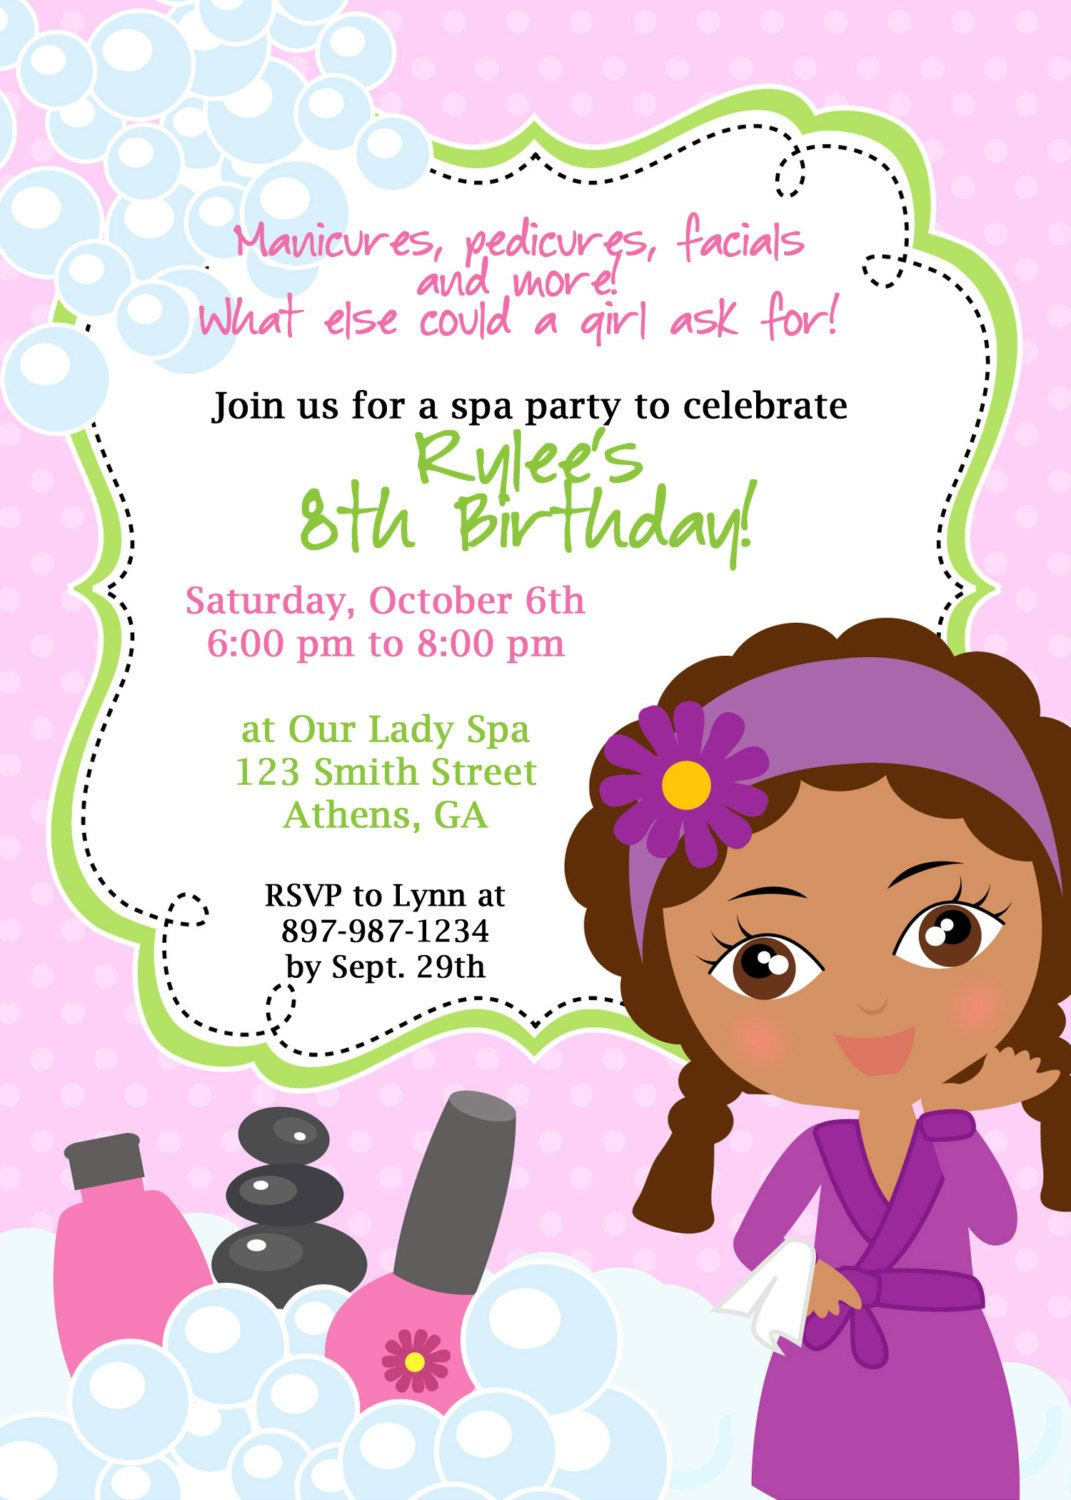 DIY Sassy Spa Party Invitation This Is The We Customized For My Daughters 10th Birthday